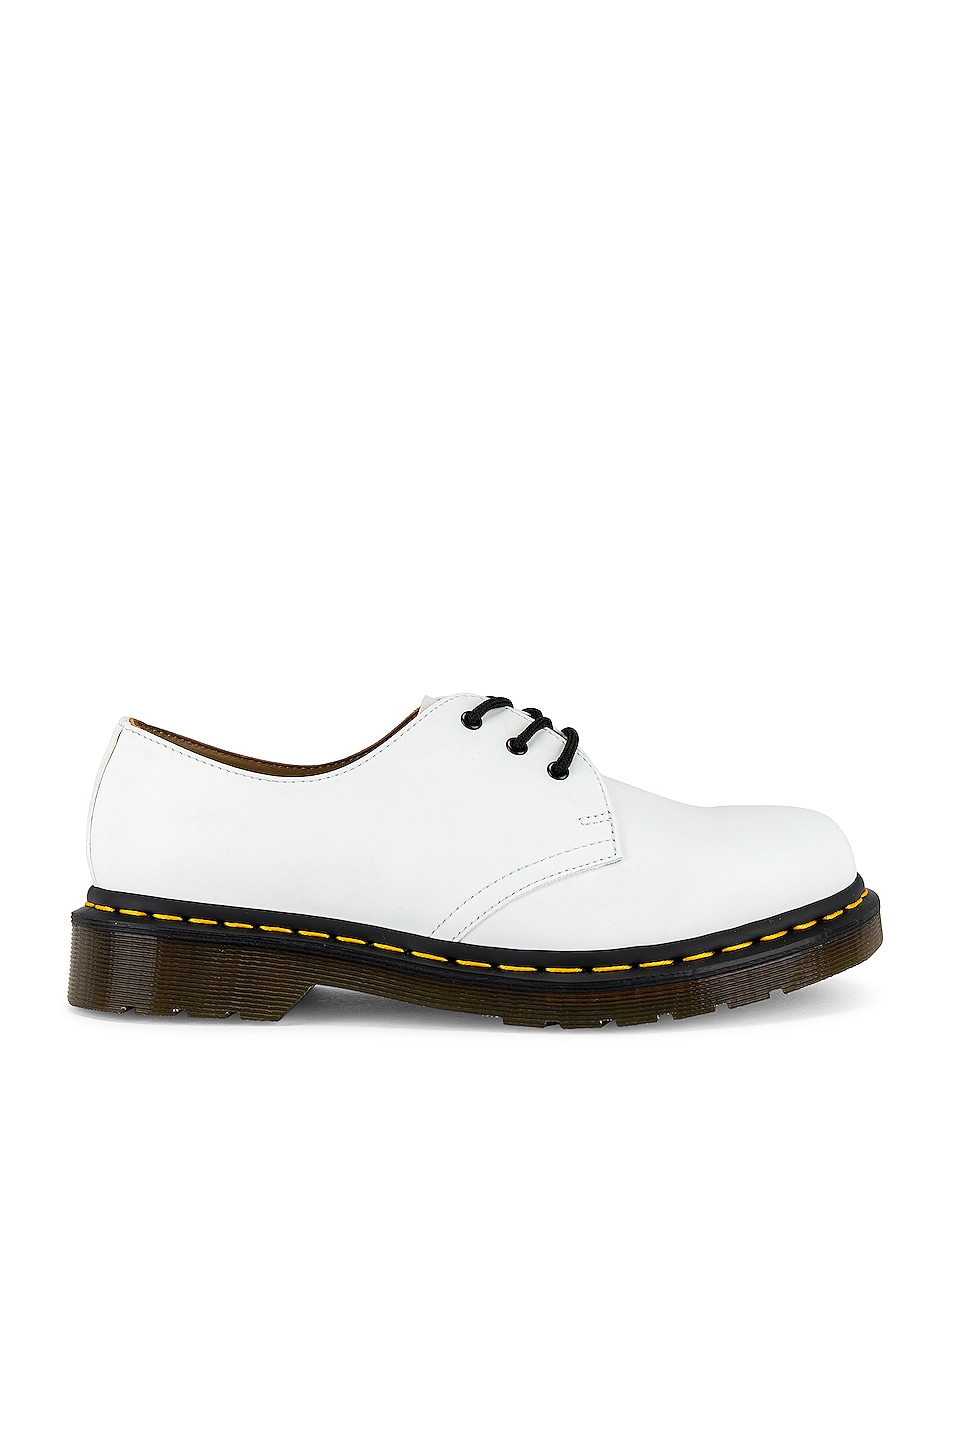 Image 1 of Dr. Martens 1461 Smooth Buck in White